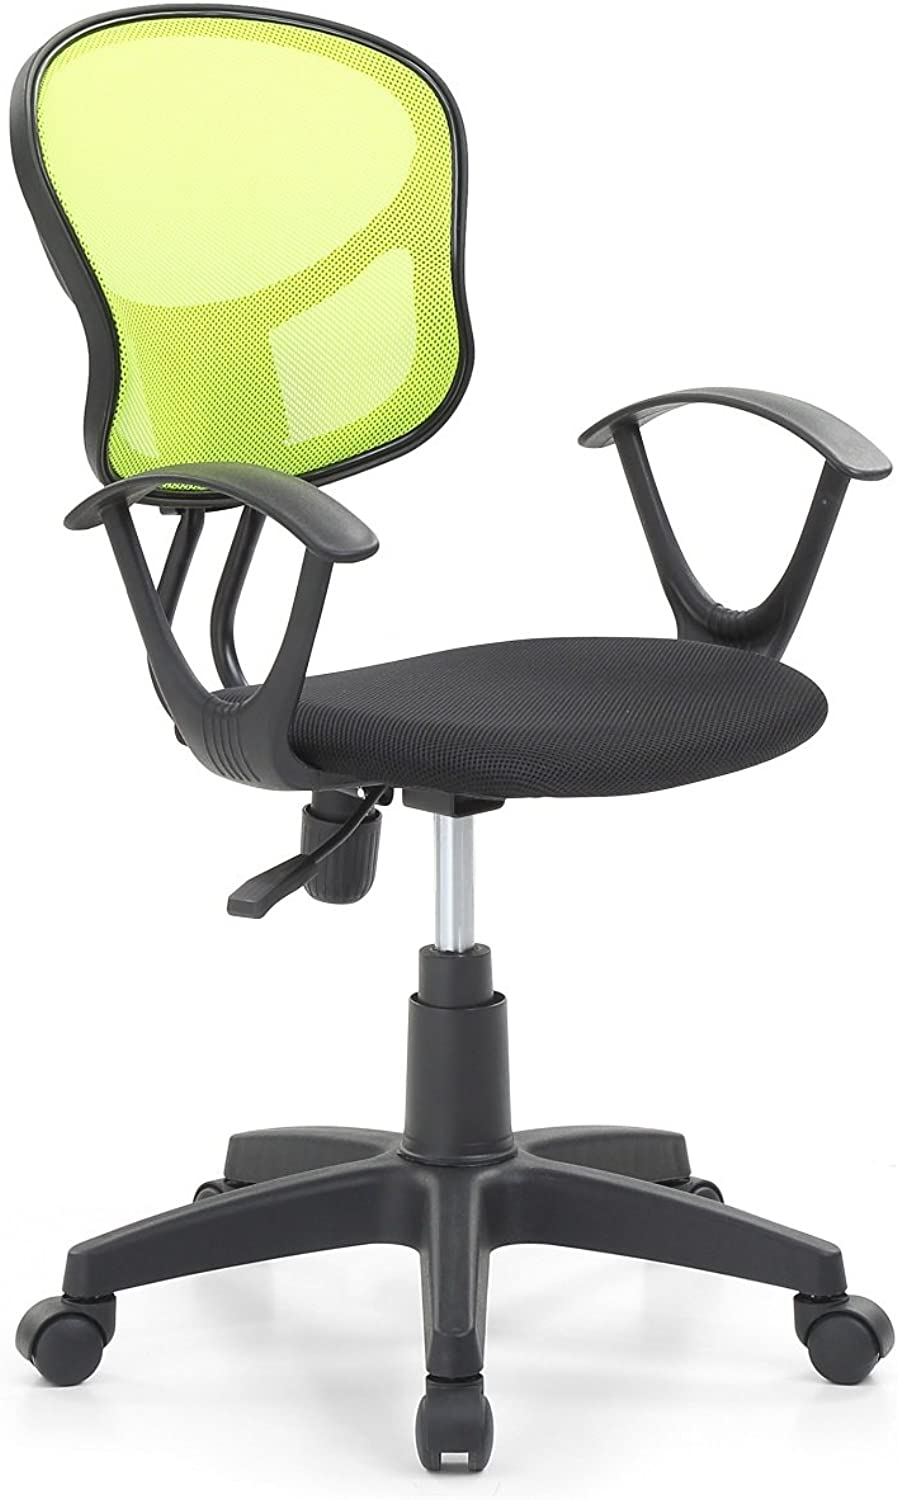 Hodedah Mesh Office Chair with Arms, Adjustable Height, and Swivel Functionality, Green